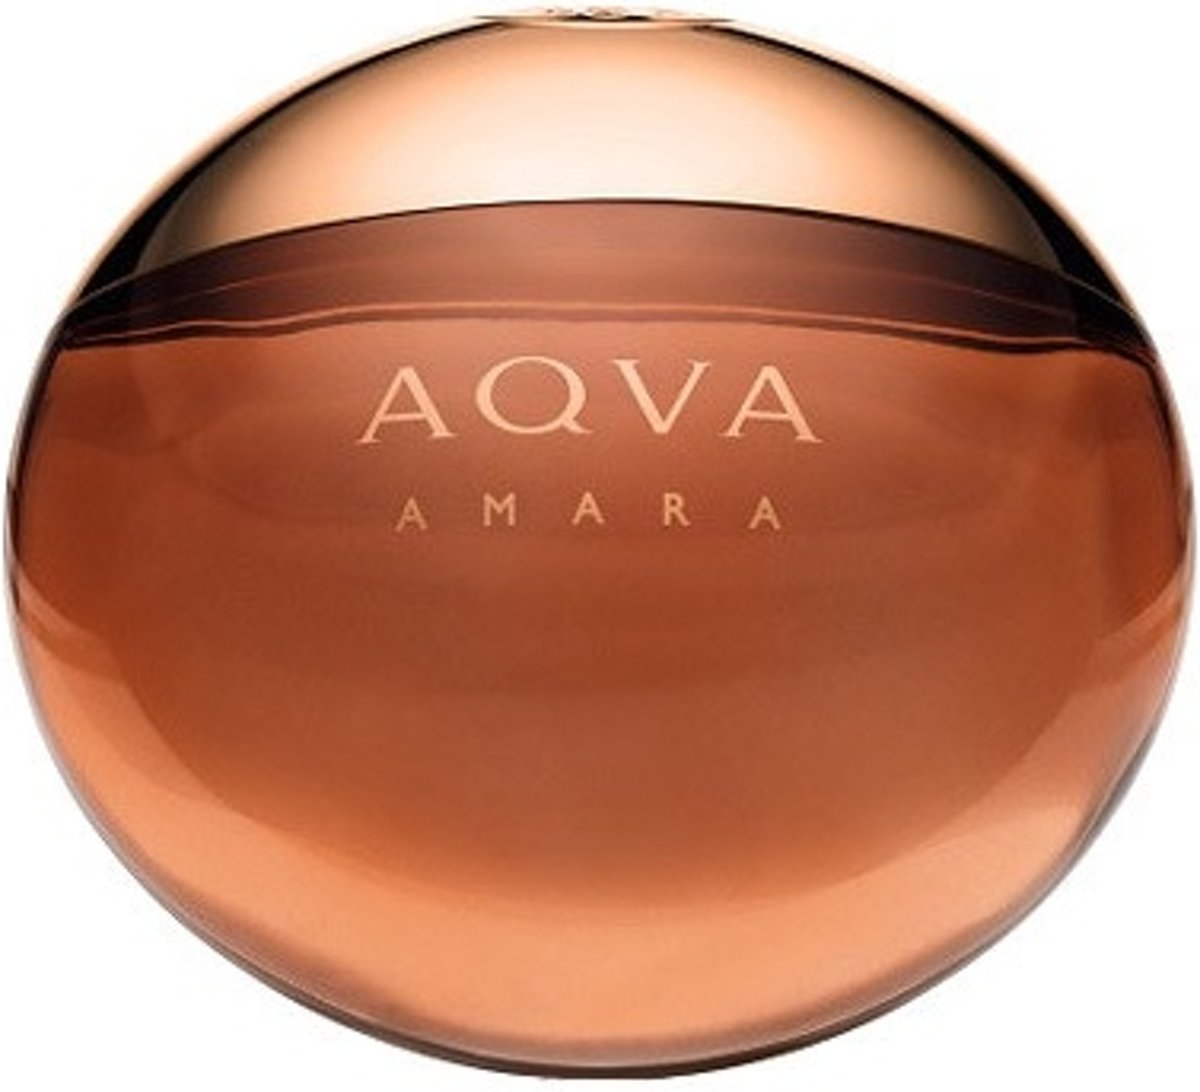 MULTI BUNDEL 2 stuks Bvlgari Aqva Amara Eau De Toilette Spray 50ml